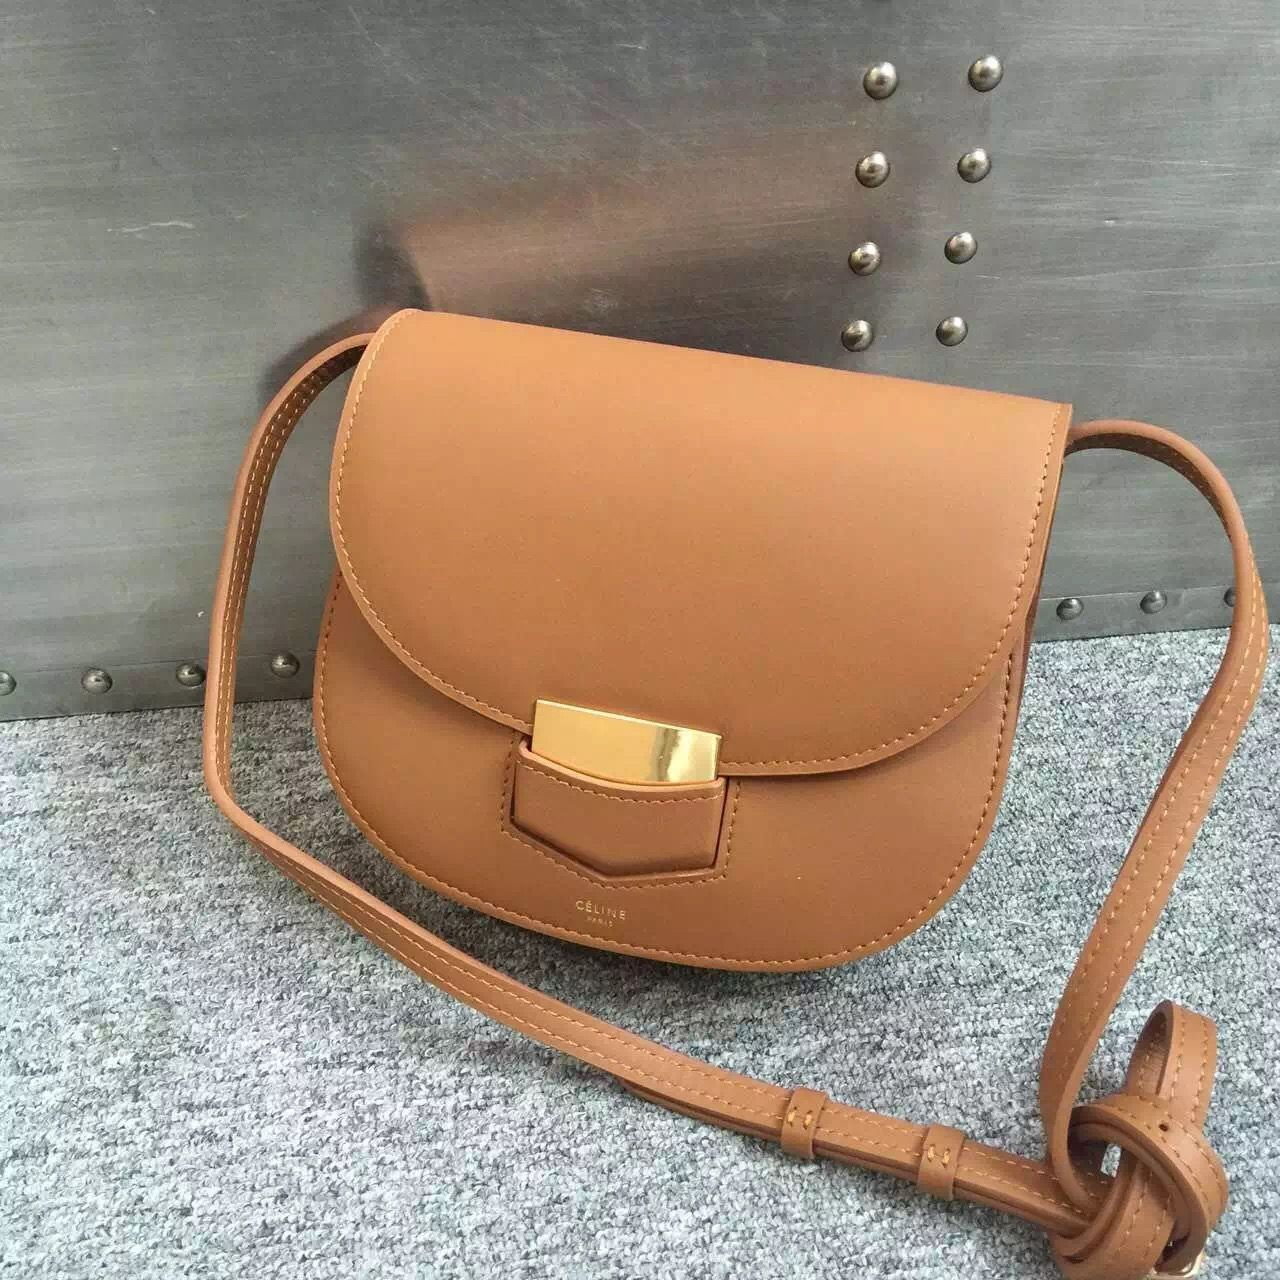 c79e5b1981 Celine Small Trotteur Bag In Tan Smooth Leather Calfskin Spring 2016 ...